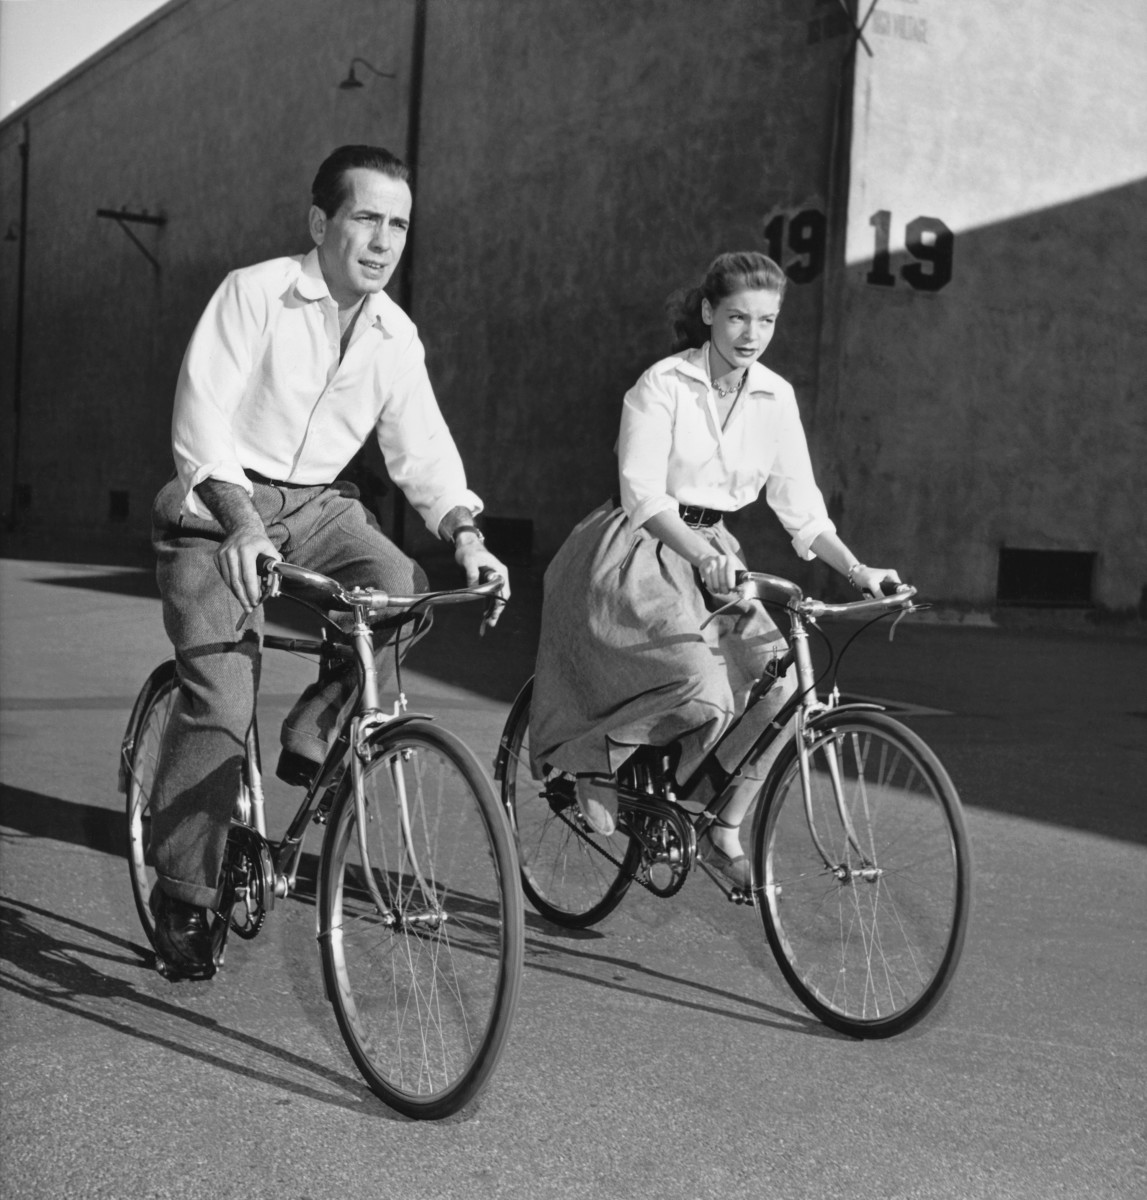 Lauren Bacall and Humphrey Bogart ride bicycles while on the set of the film 'Key Largo'